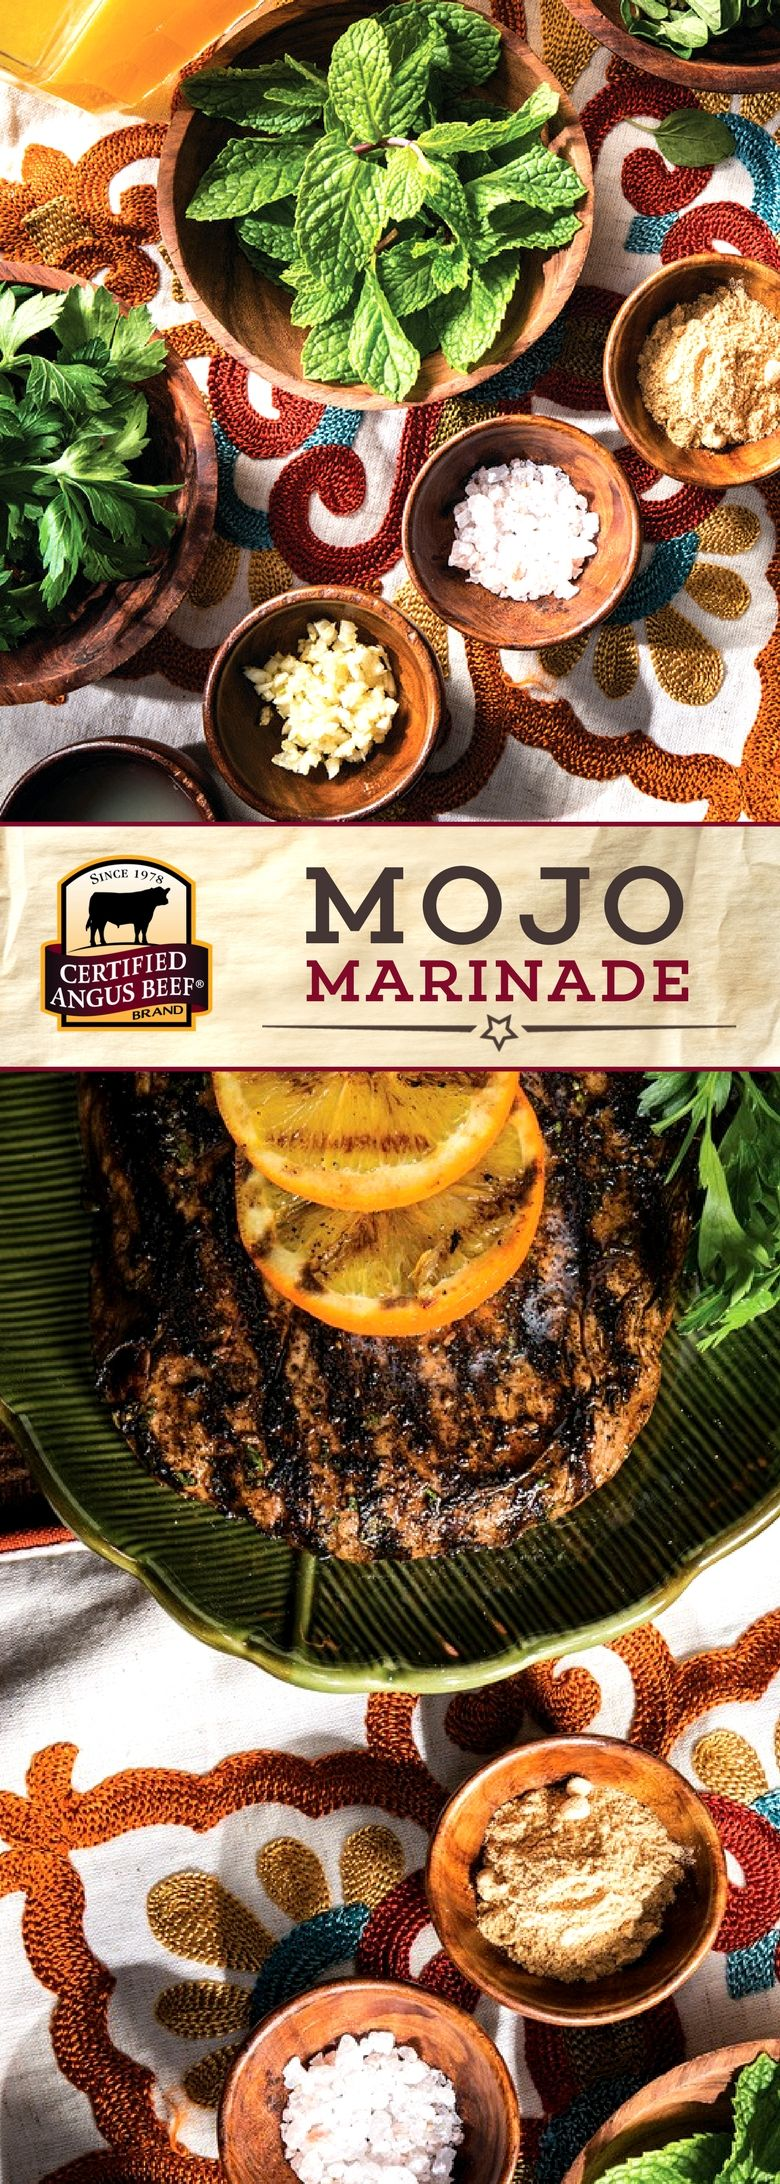 Certified Angus Beef®️️ brand Mojo Marinade is packed with FRESH herbs, orange juice, and a deeply flavorful seasoning mix for a DELICIOUS marinade! Enhance the flavor of your favorite cut of beef with this tasty marinade.  #bestangusbeef #certifiedangusbeef #marinade #seasoning #marinadeforbeef